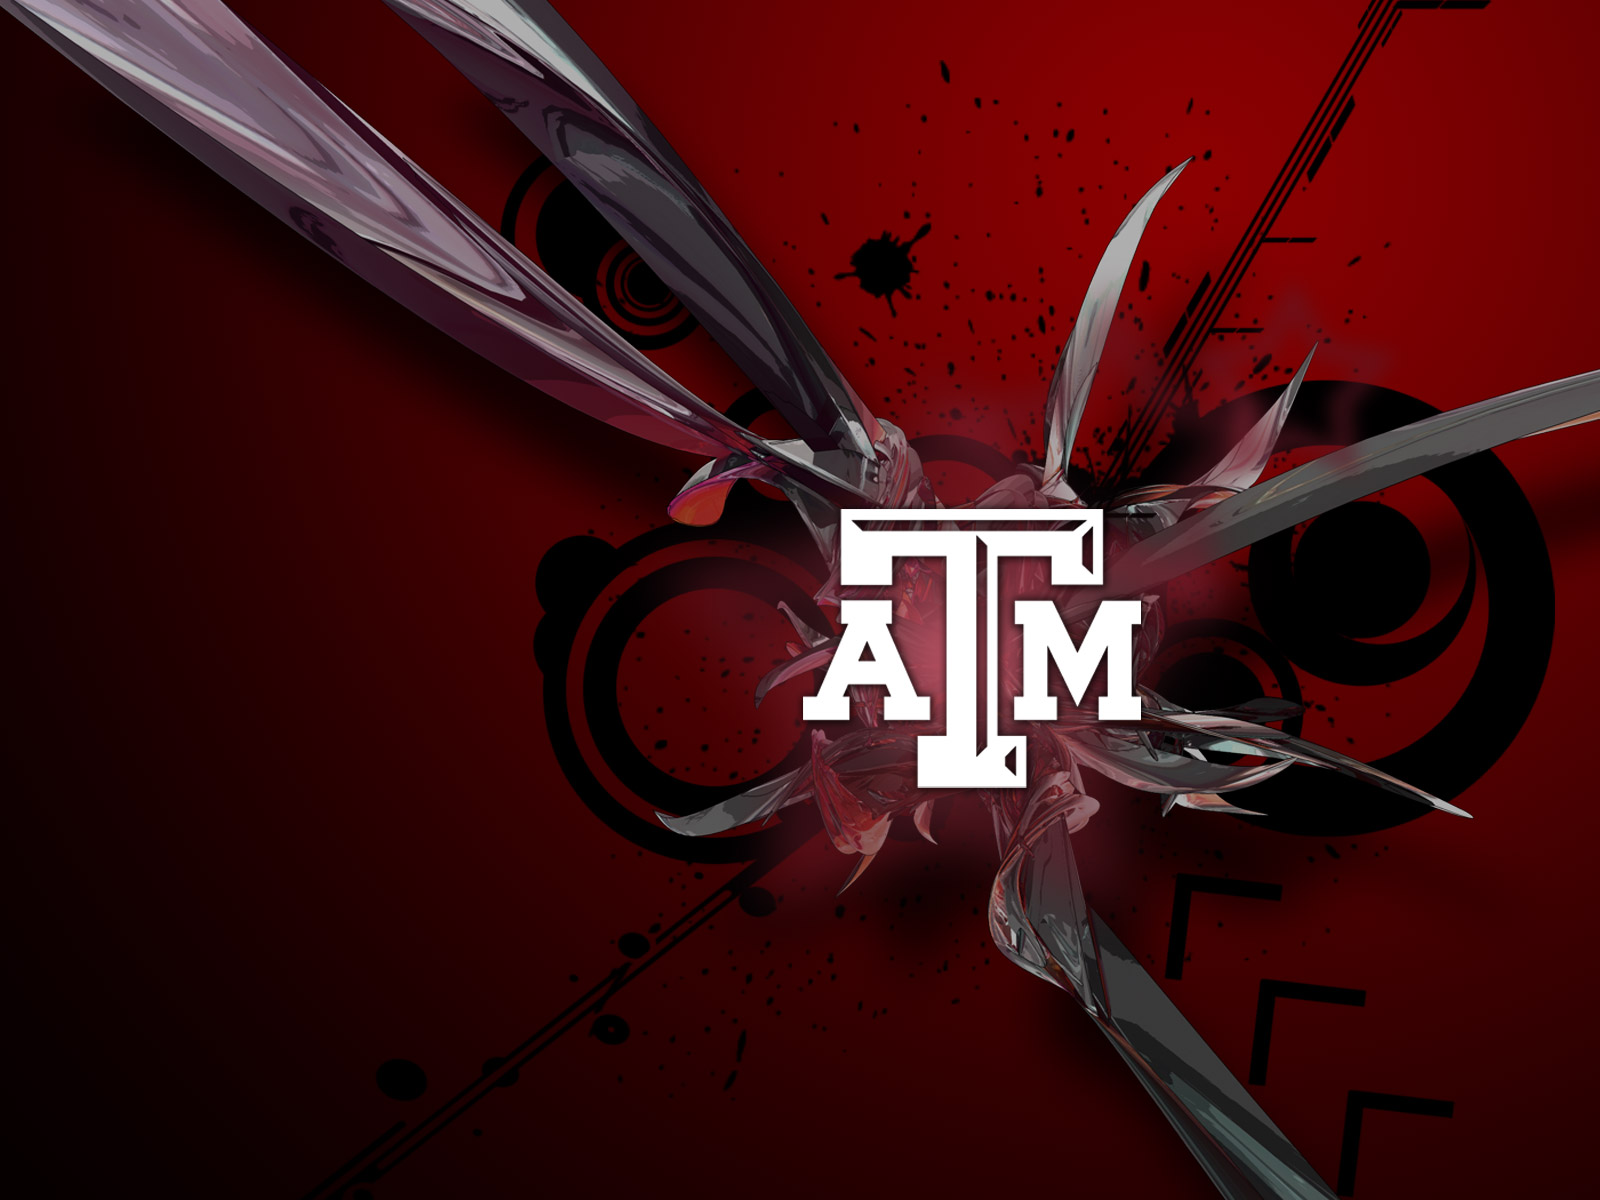 Texas AM Wallpapers Browser Themes More for Aggie Fans 1600x1200